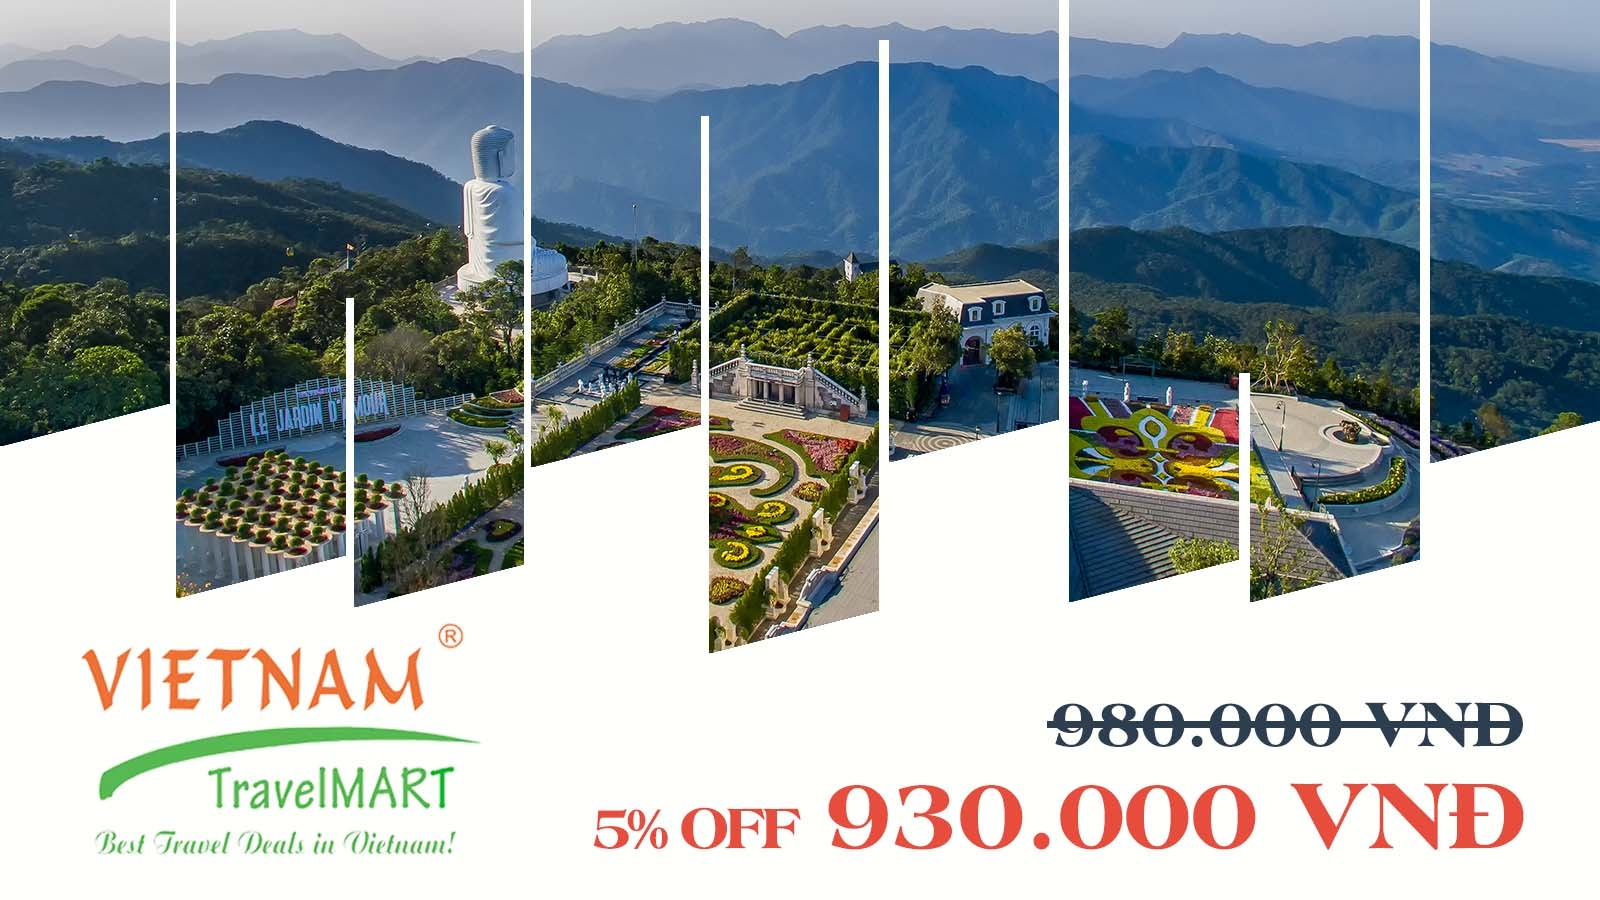 Vietnam TravelMART JSC | 5% OFF Bana Hills daily tour